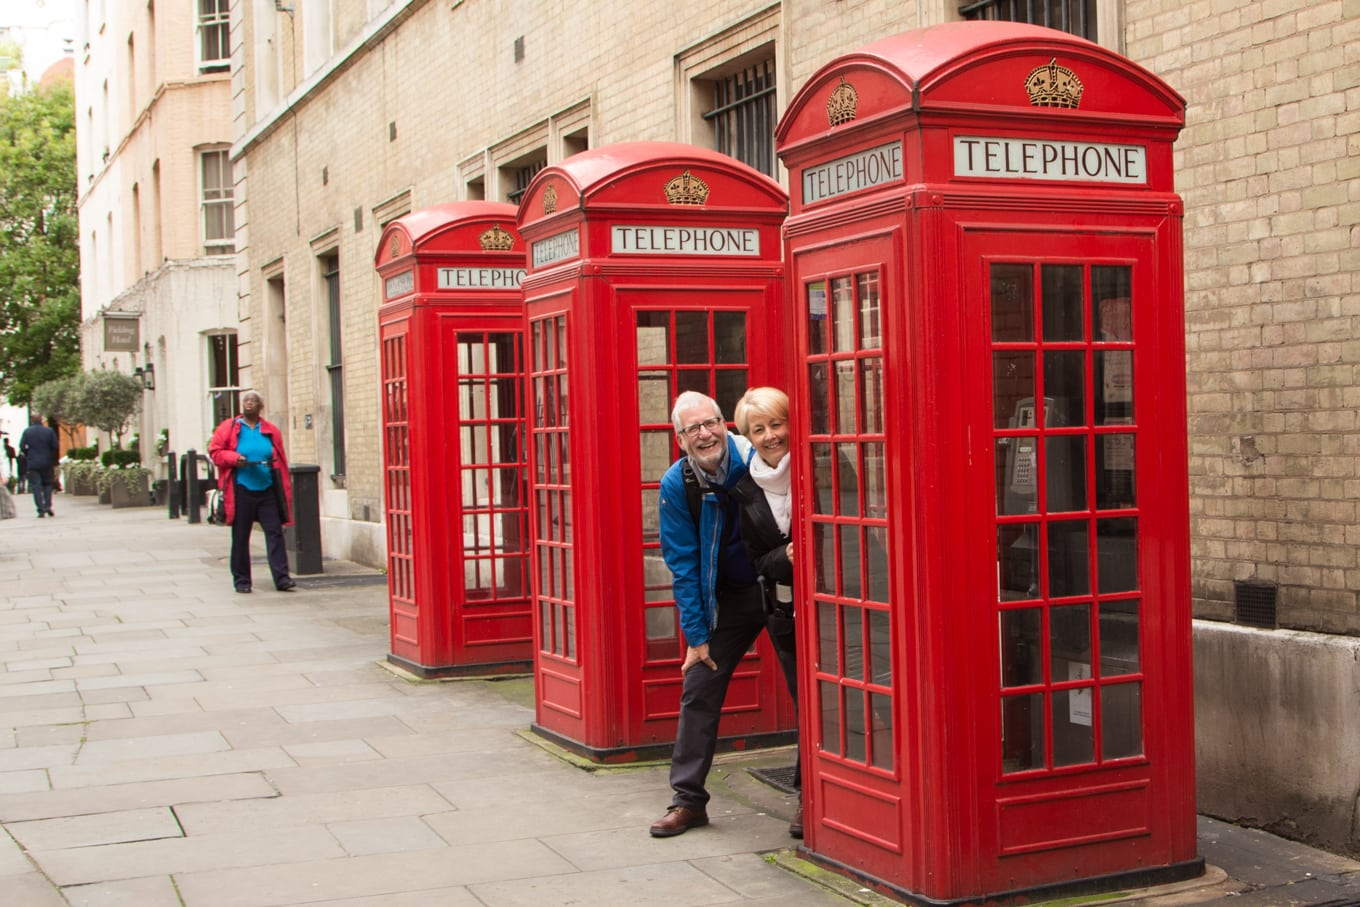 Photo of three British classic red phone booths on the Covent Garden Apple Store Photo Walk.